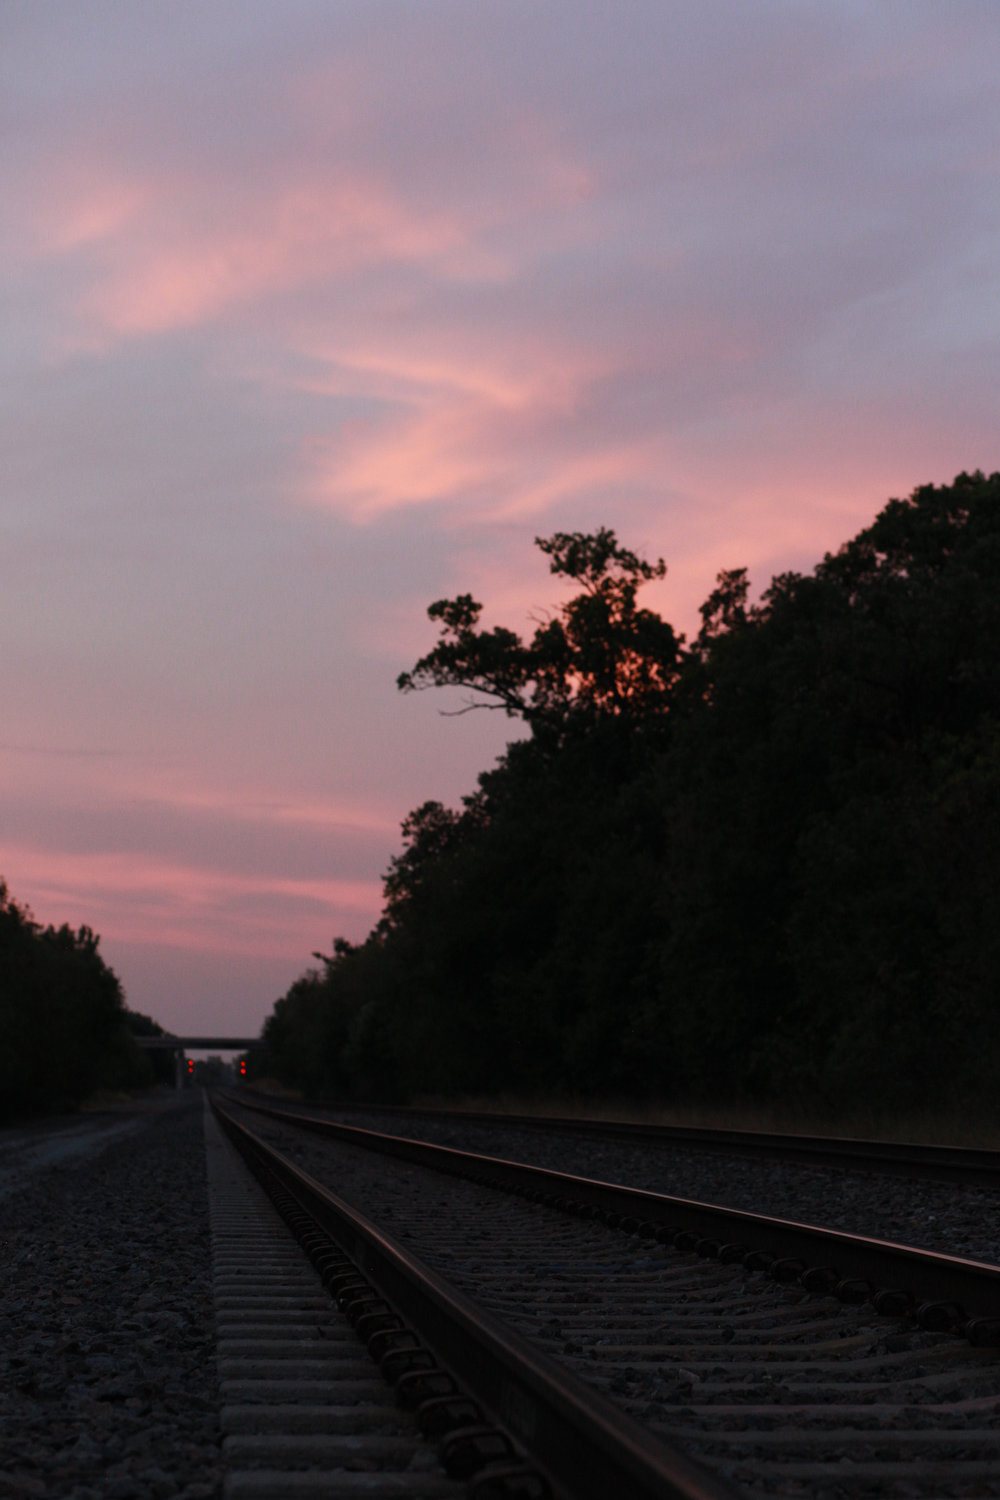 As the BNSF railroad hauls coal and oil south out of town, the park continues to be a peculiar place where humans and nature collide.